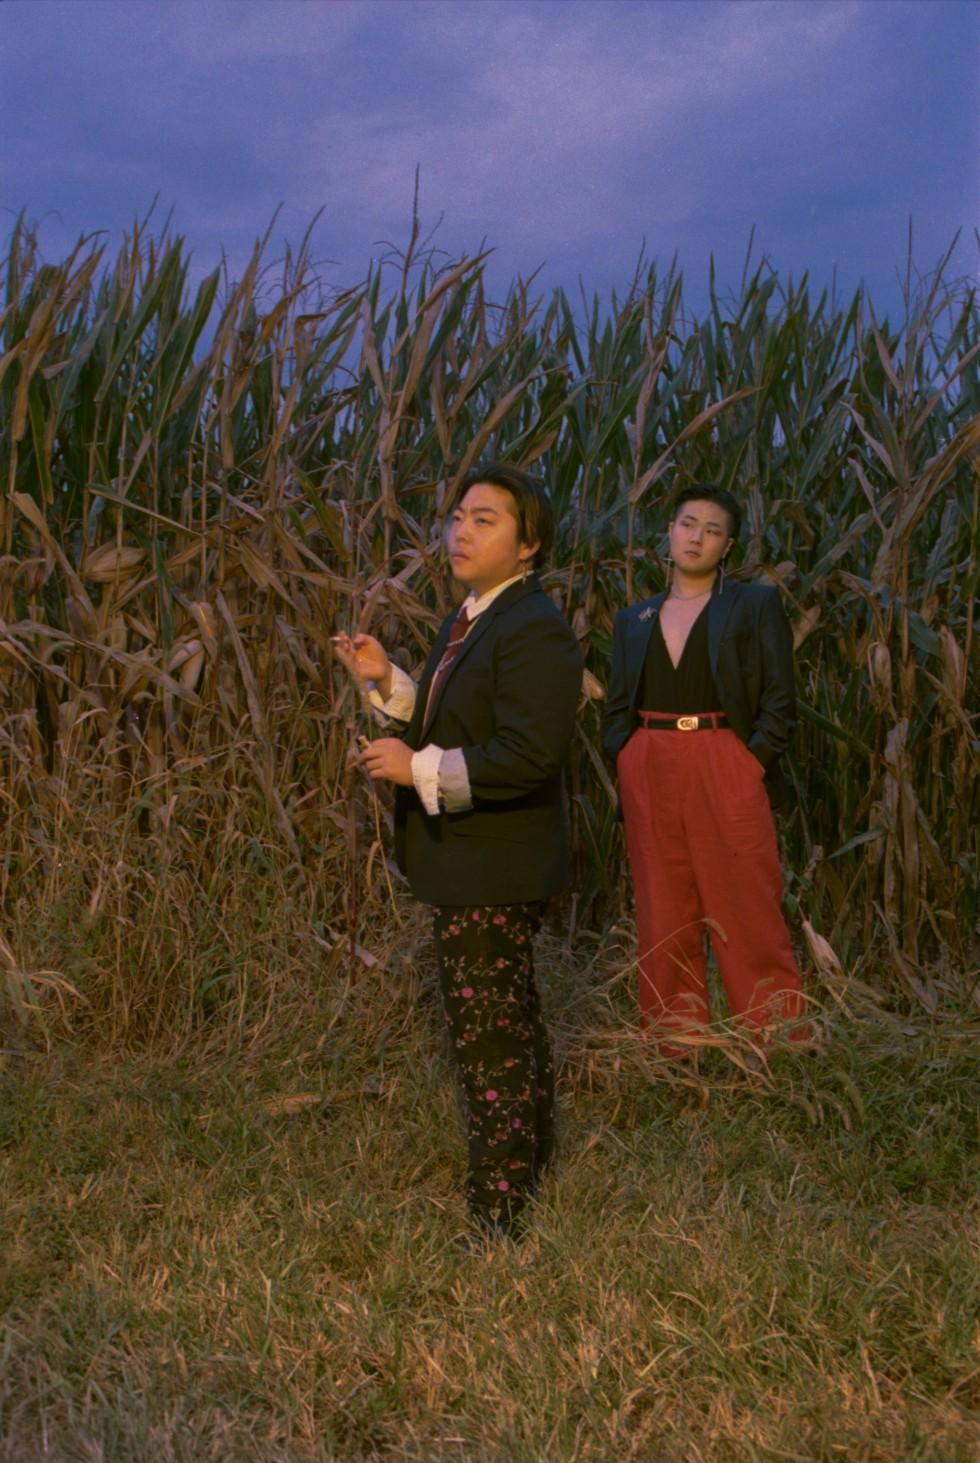 Two people standing in front of corn stalks